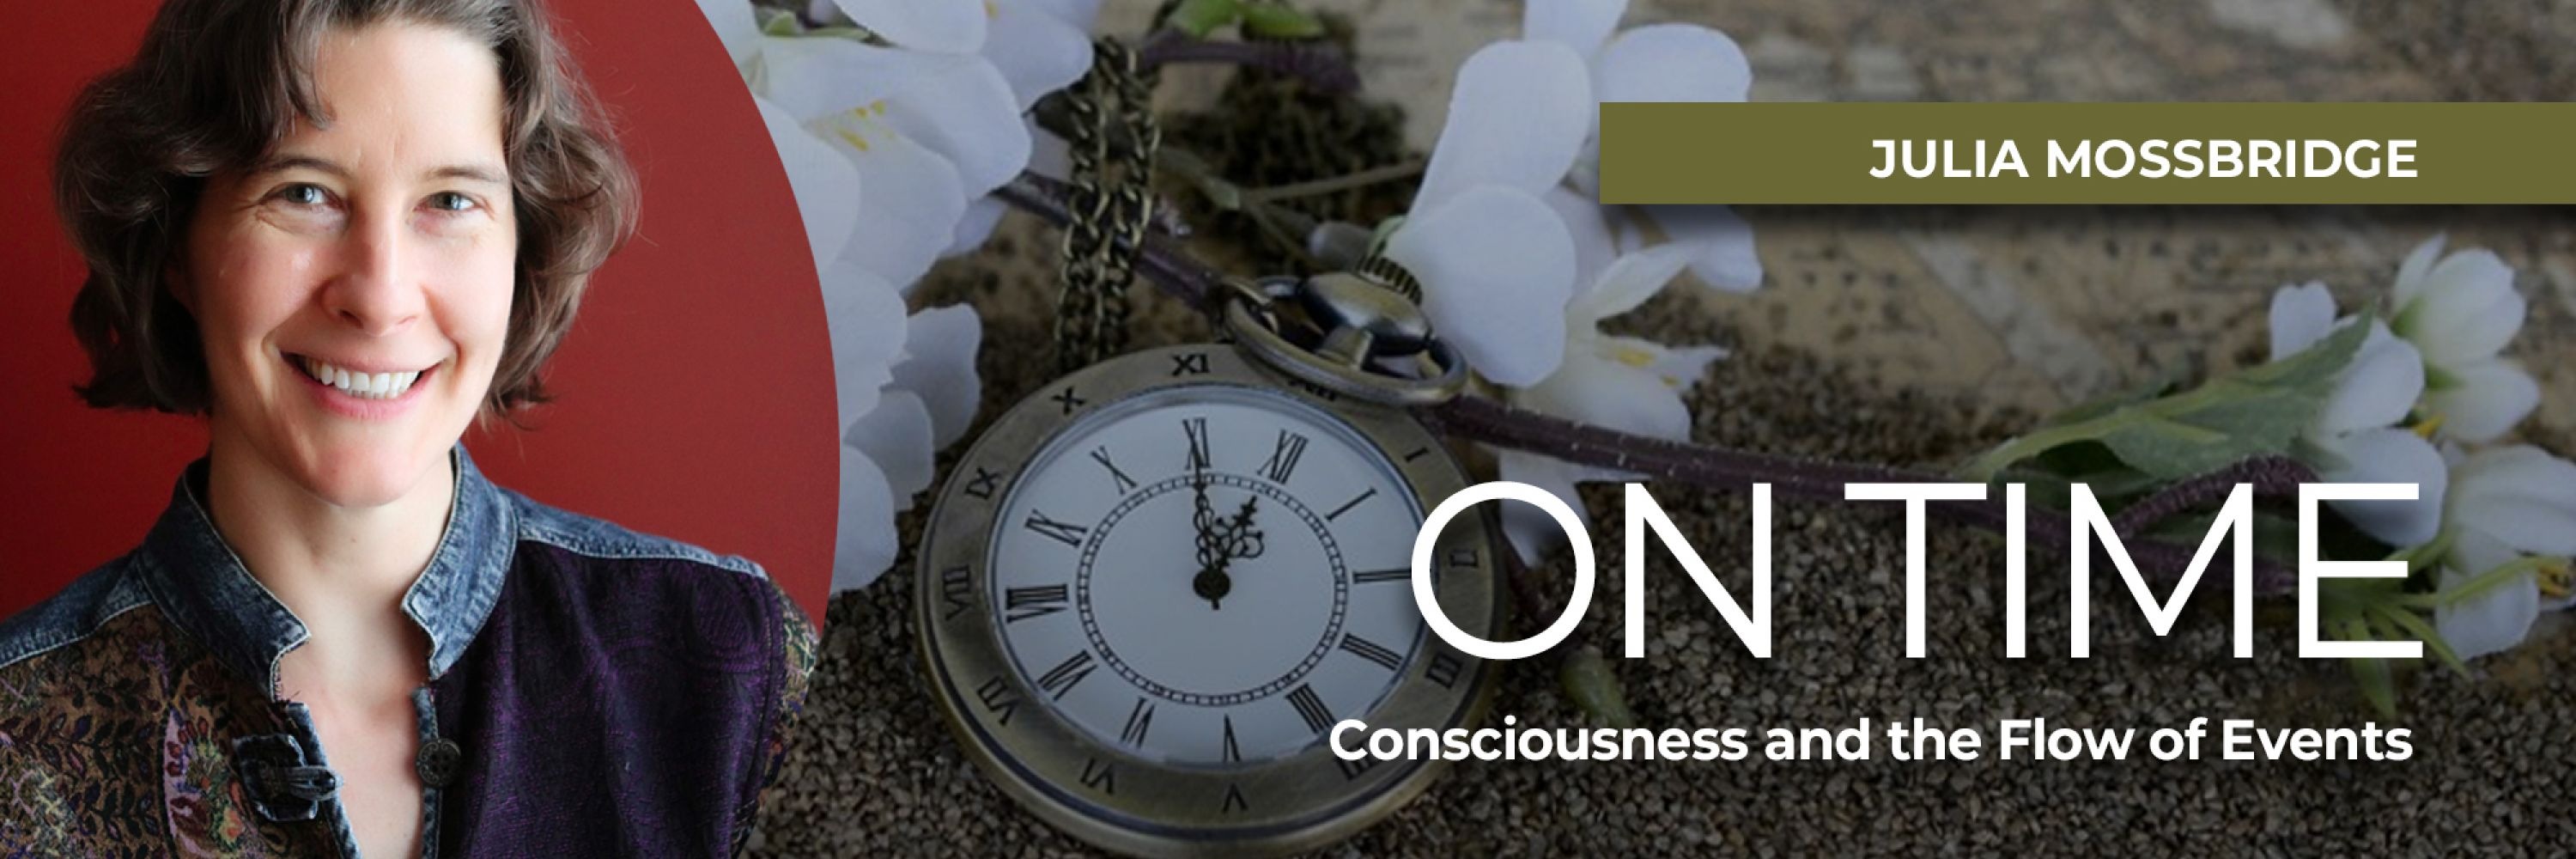 On Time: Consciousness and the Flow of Events